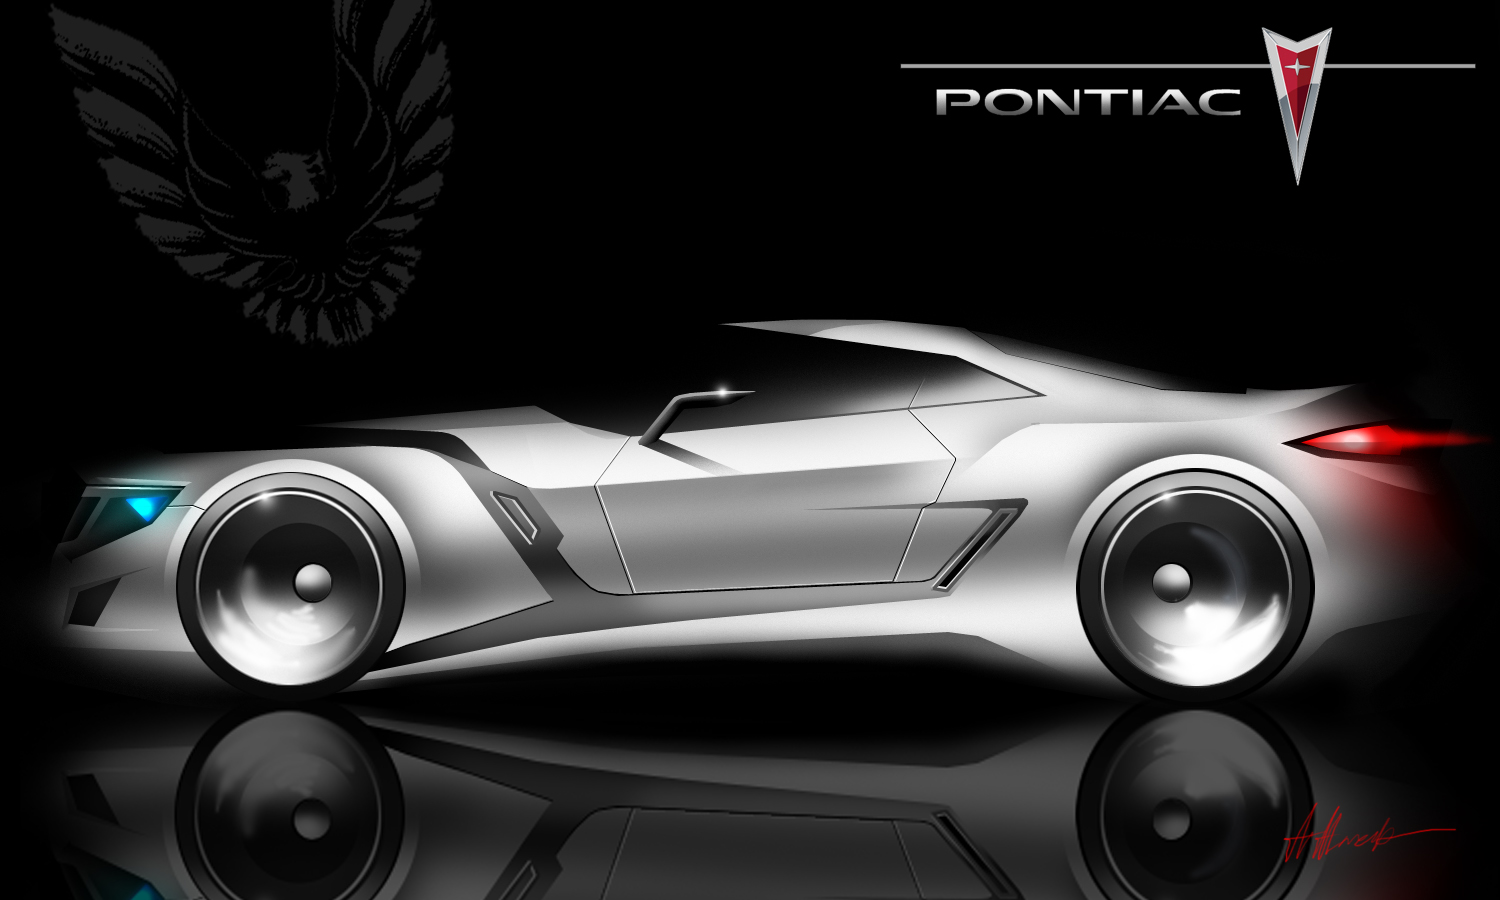 Still feelin' nostalgic about the Pontiac Firebird and its concepts made by